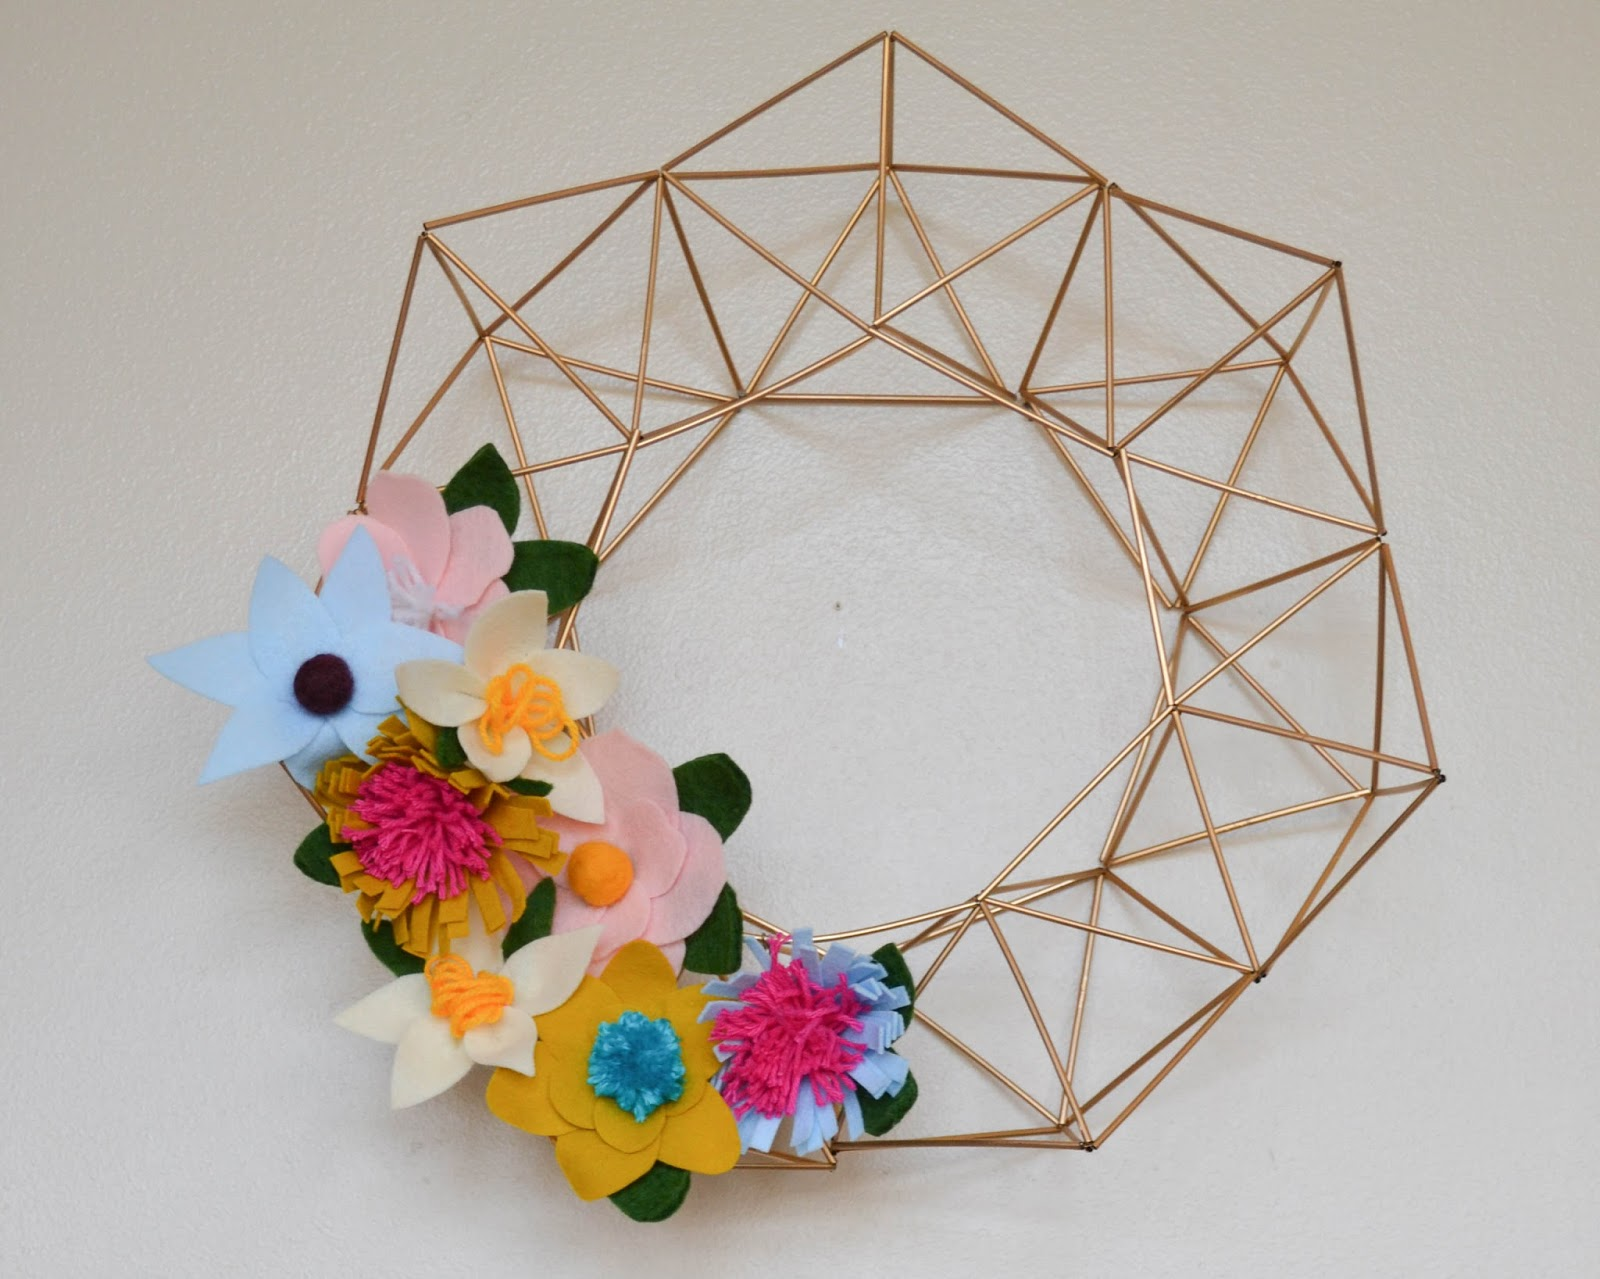 Wreath Decor Doorway Laurel Garland Geometric Gold Felt Paper Flowers Floral Modern Wreaths